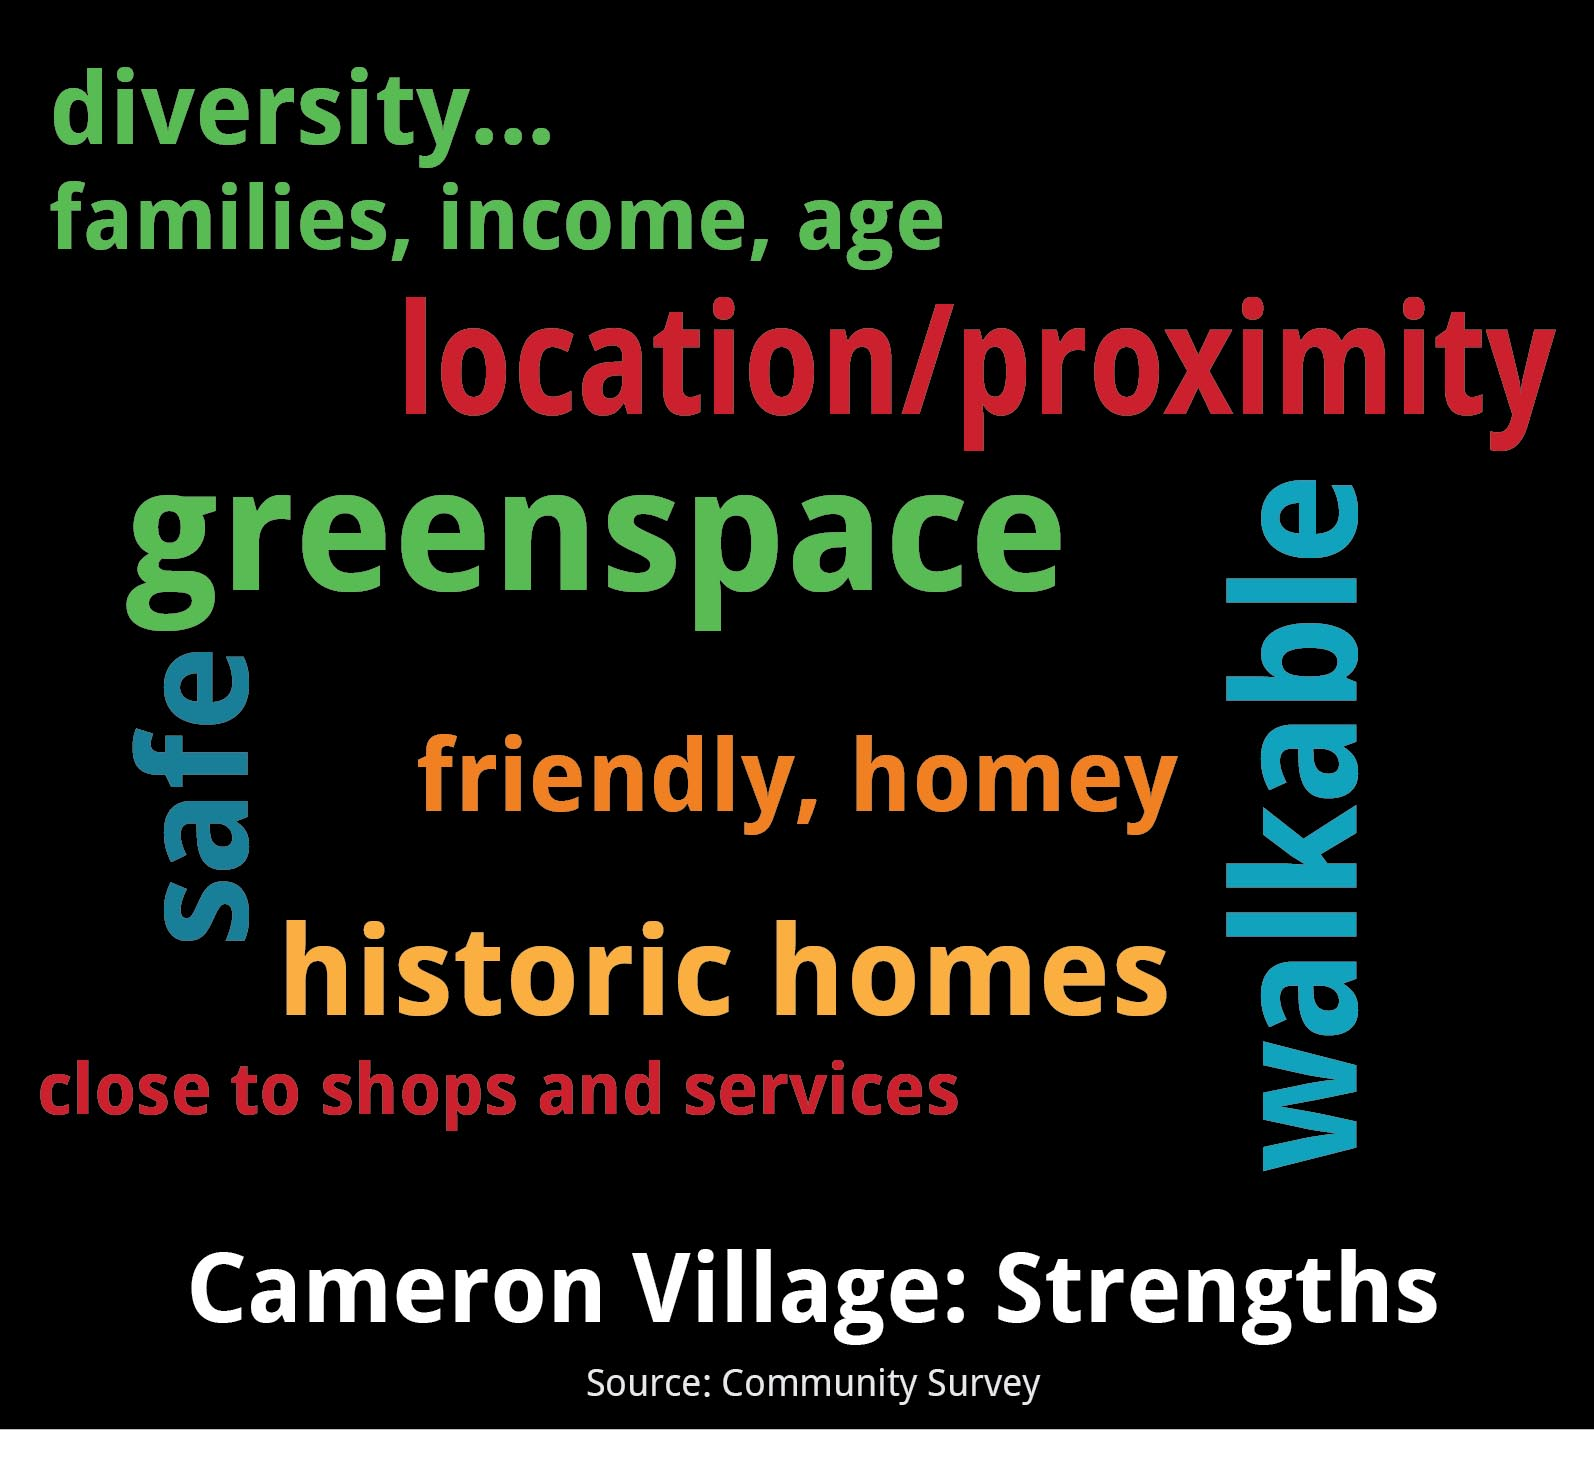 Community Meeting - Cameron Village Strengths